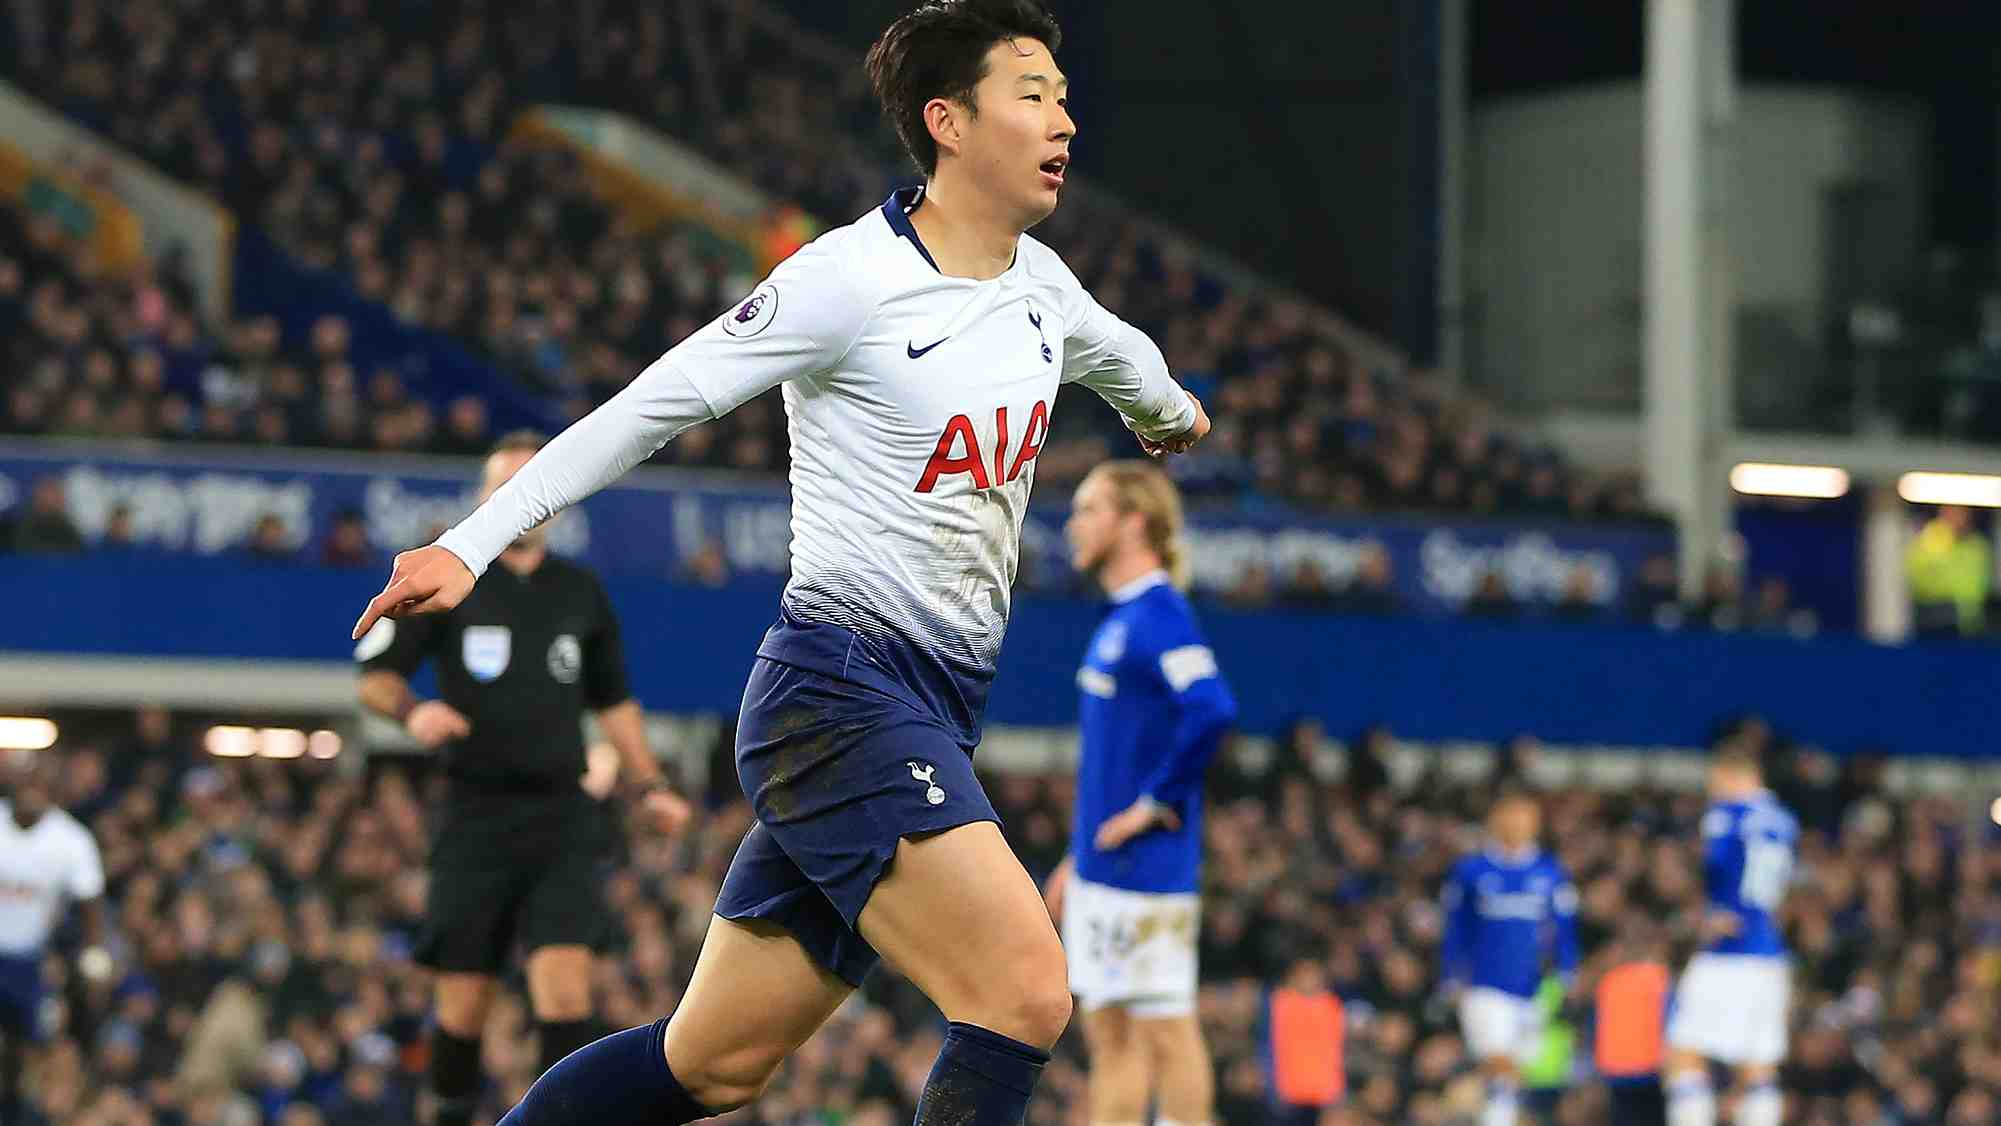 42ee02d46 ... race might not be just a two-horse affair with a hugely impressive 6-2  win at Everton on Sunday with Son Heung-min and Harry Kane both scoring  twice.